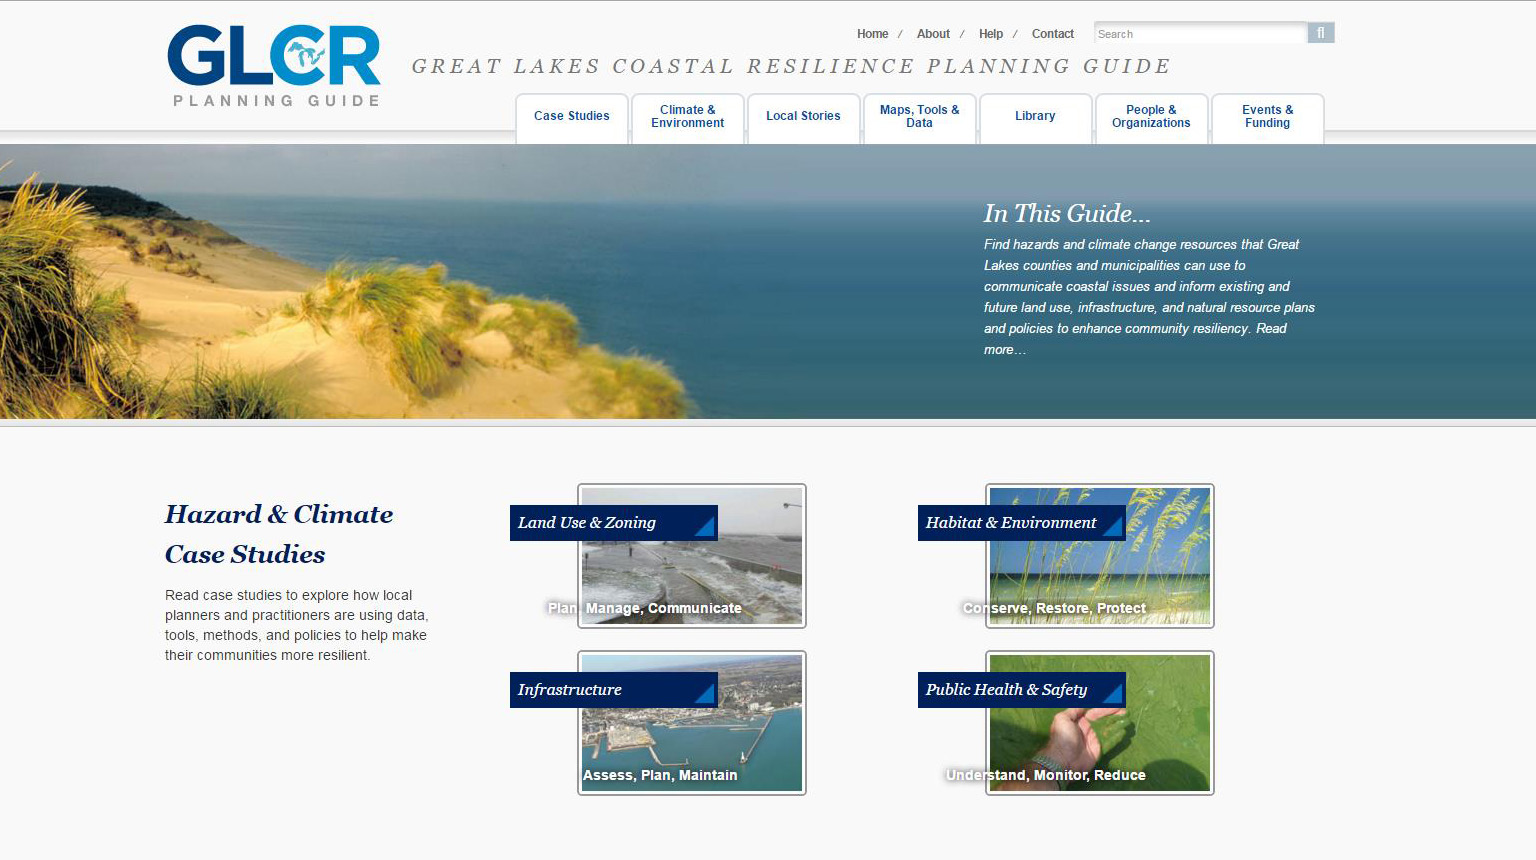 Great Lakes Coastal Resilience Planning Guide